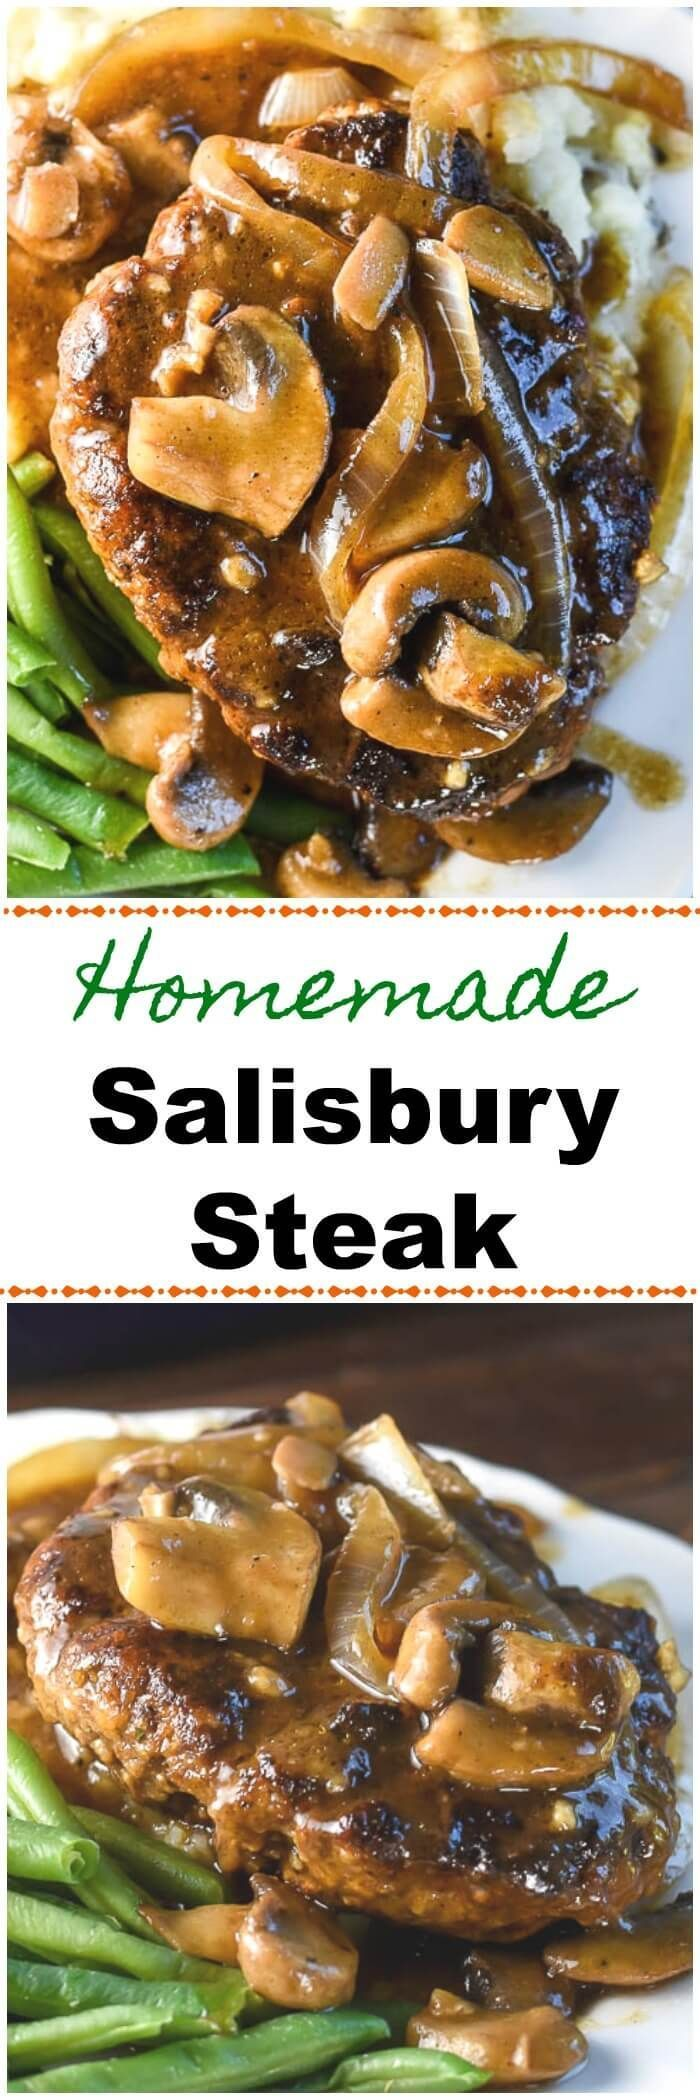 This homemadeSalisbury Steakis a ground beef patty with onions, mushrooms, and a brown Salisbury Steak gravy, and is pure comfort food. Serve with mashed potatoes and green beans or peas and you have a fantastic family dinner.